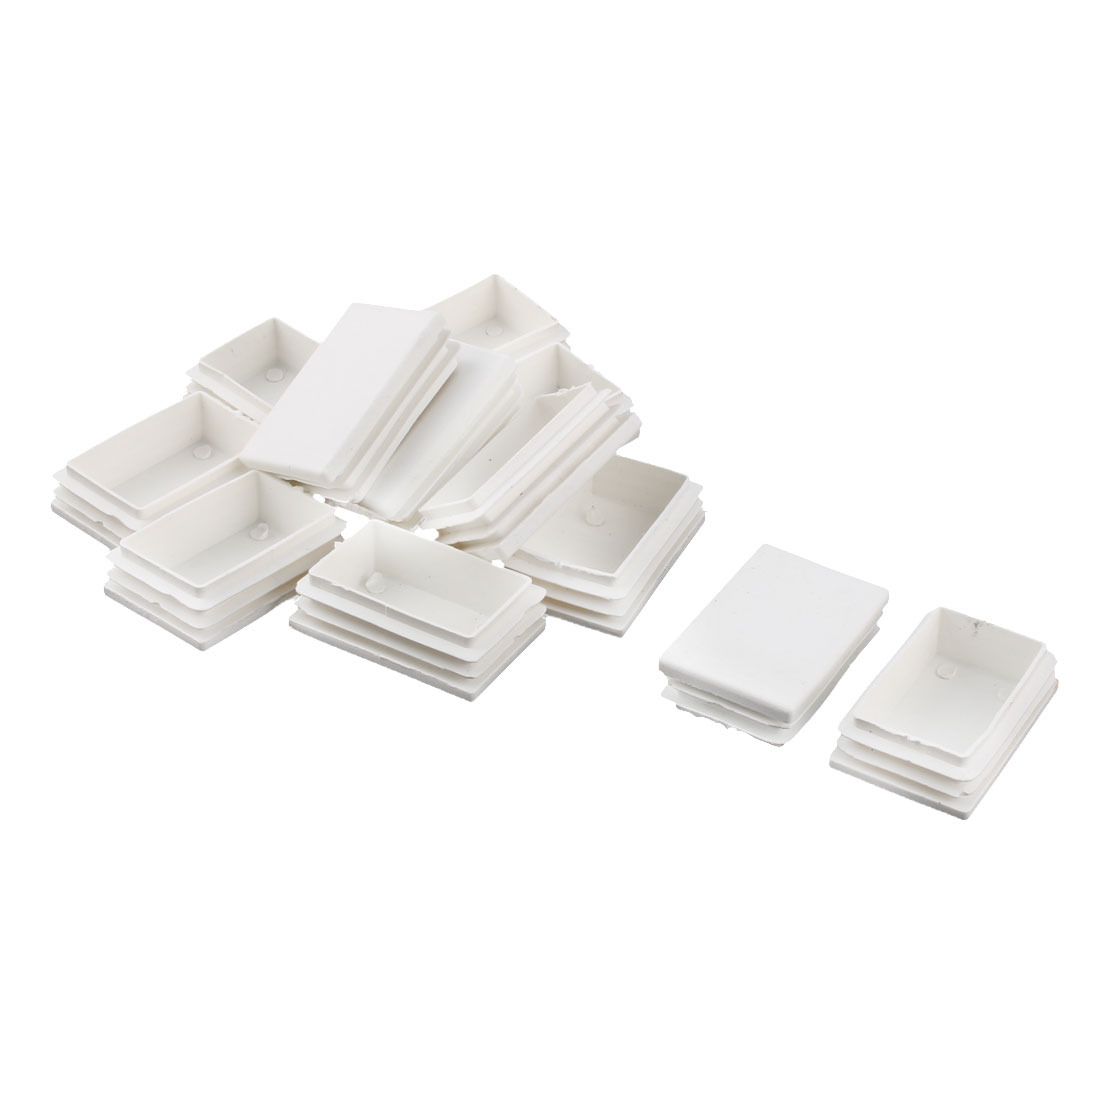 Plastic Rectangle Chair Feet Protector Tube Insert White 40 x 60mm 12 Pcs